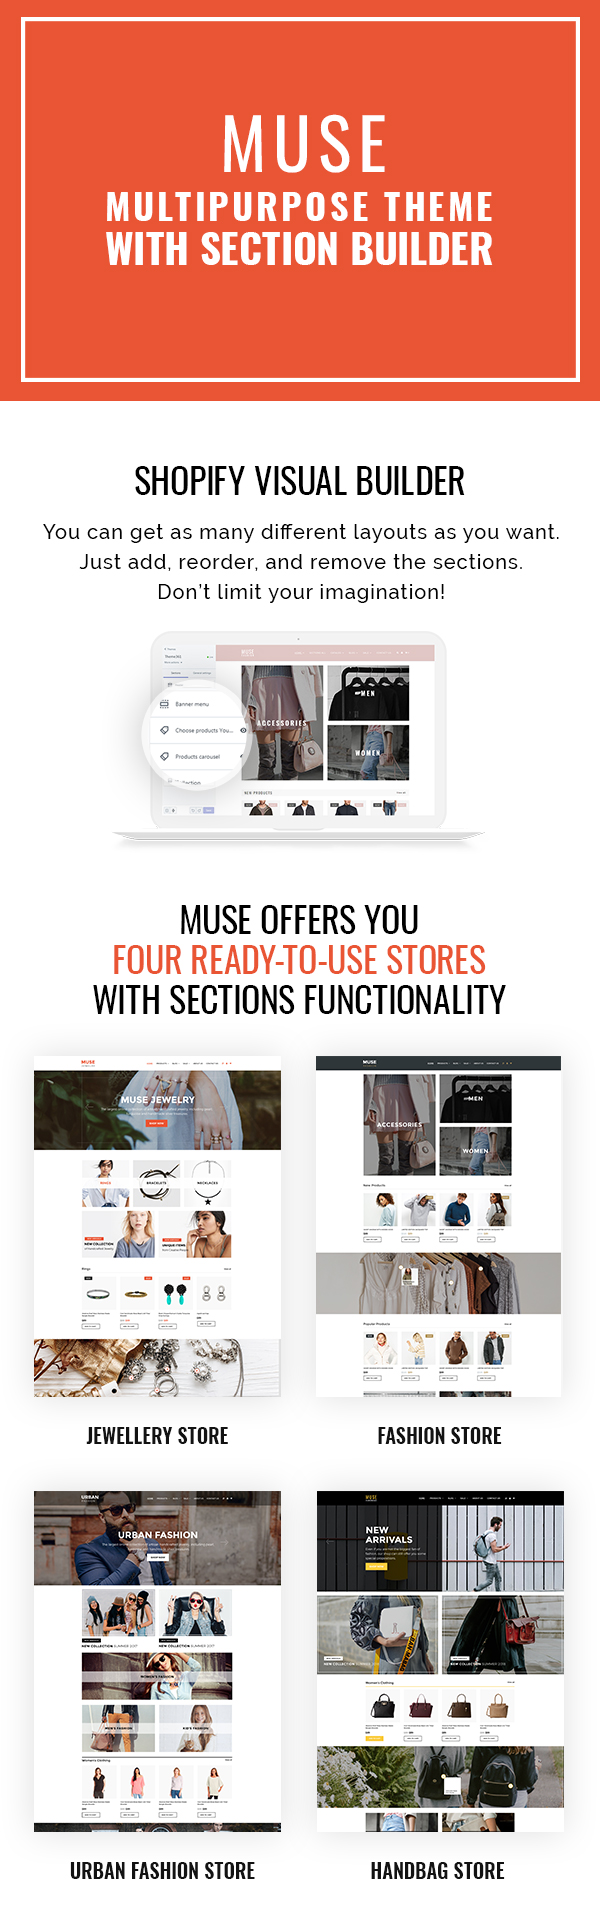 Muse - Multipurpose Shopify Theme with Section Builder & Lookbook - 1